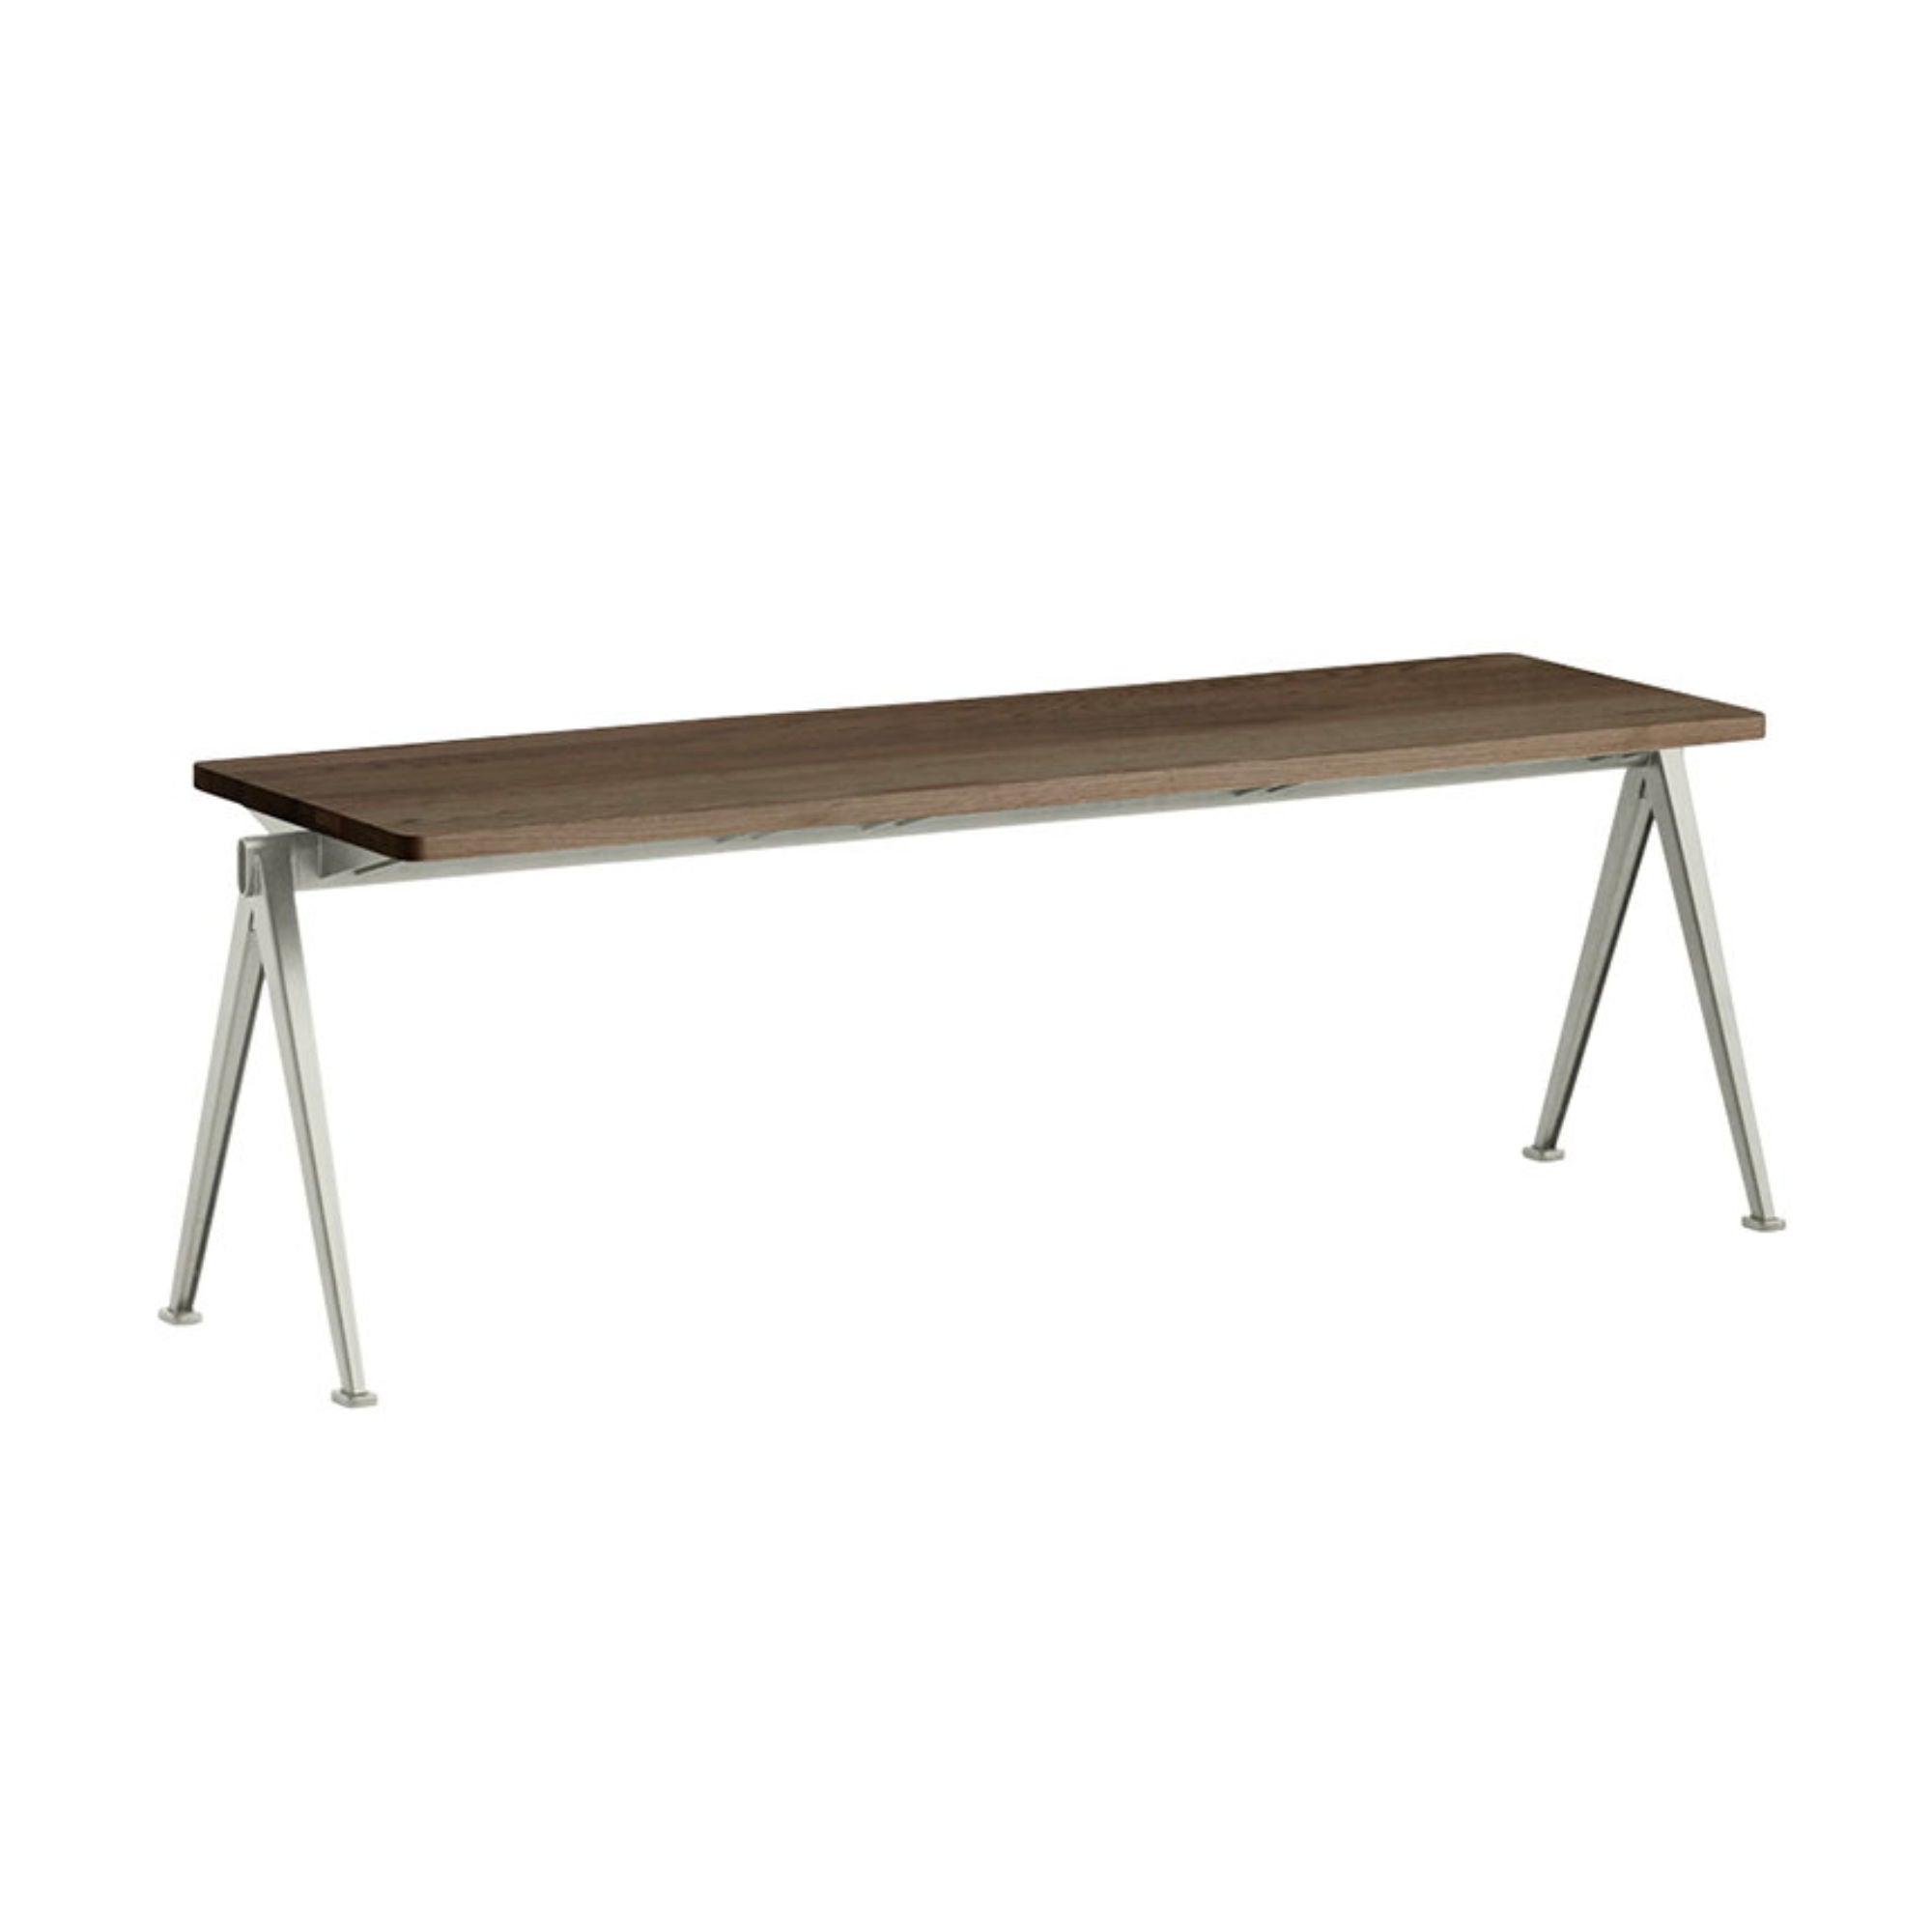 Hay Pyramid Bench 11 L140 , Smoked Solid Oak - Beige Frame